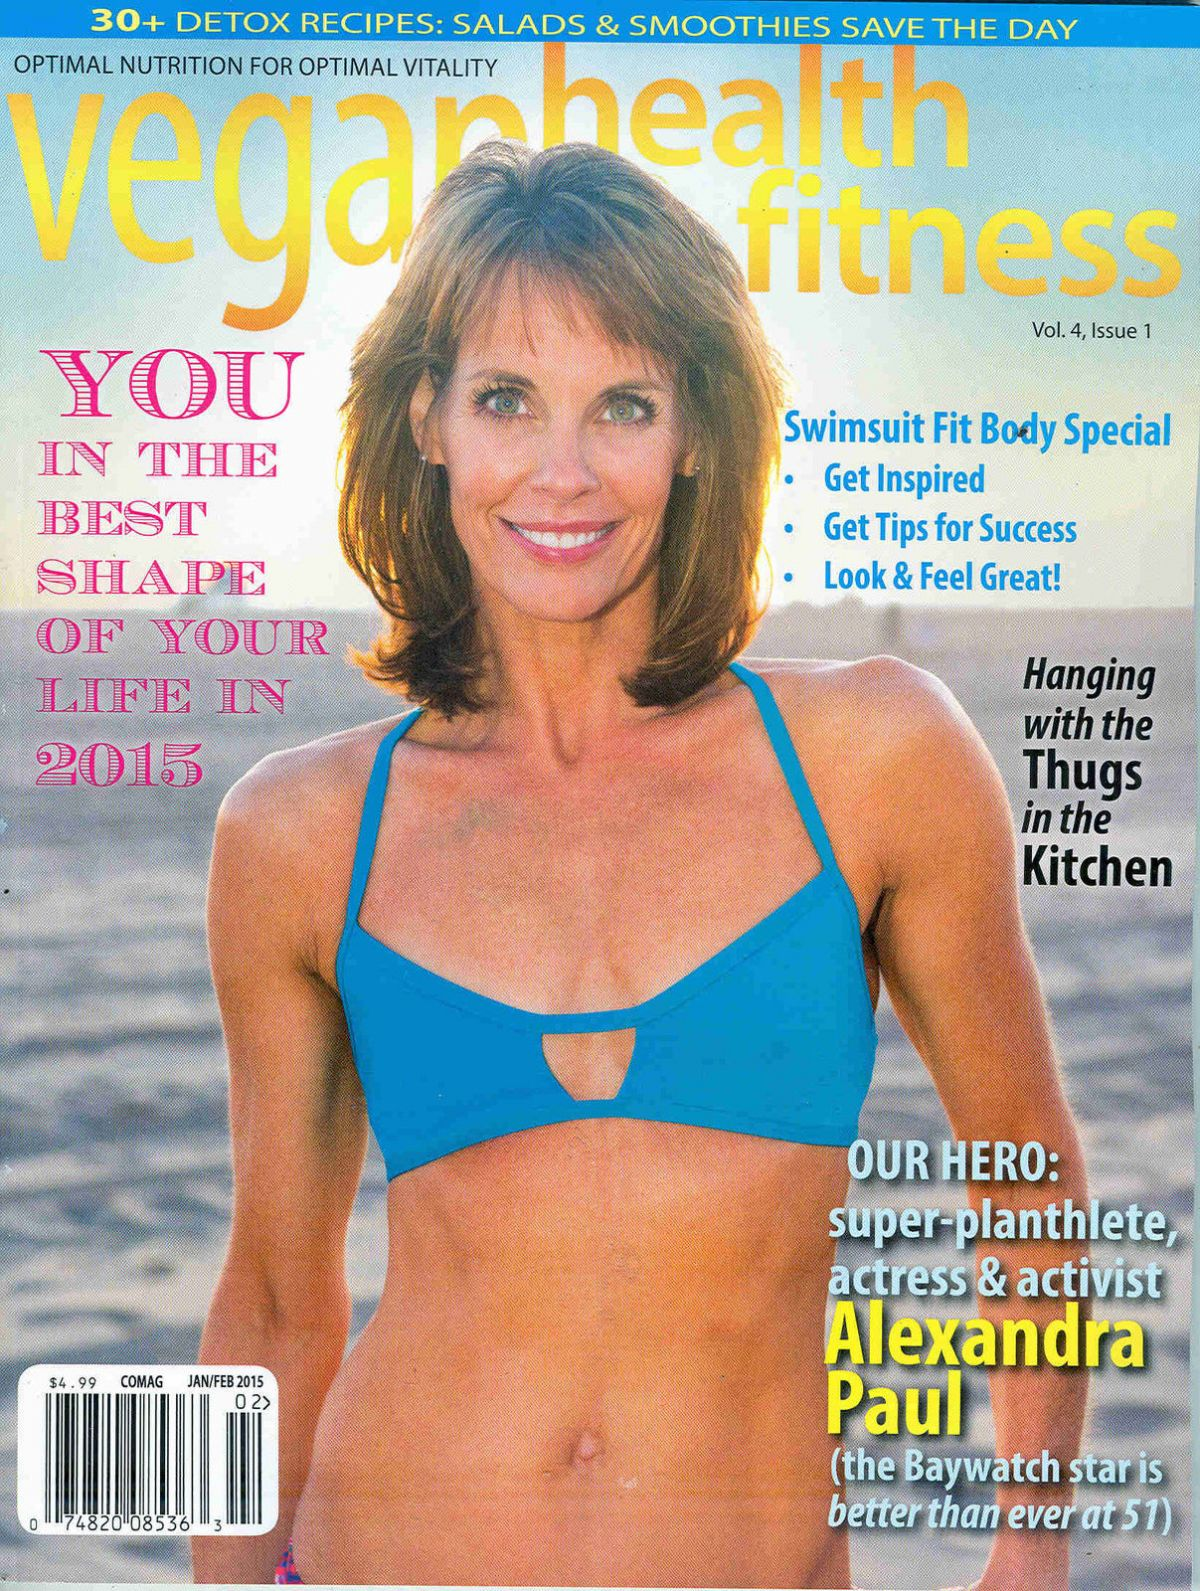 ALEXANDRA PAUL on the Cover of Vegan Health & Fitness Magazine, February 2015 Issue